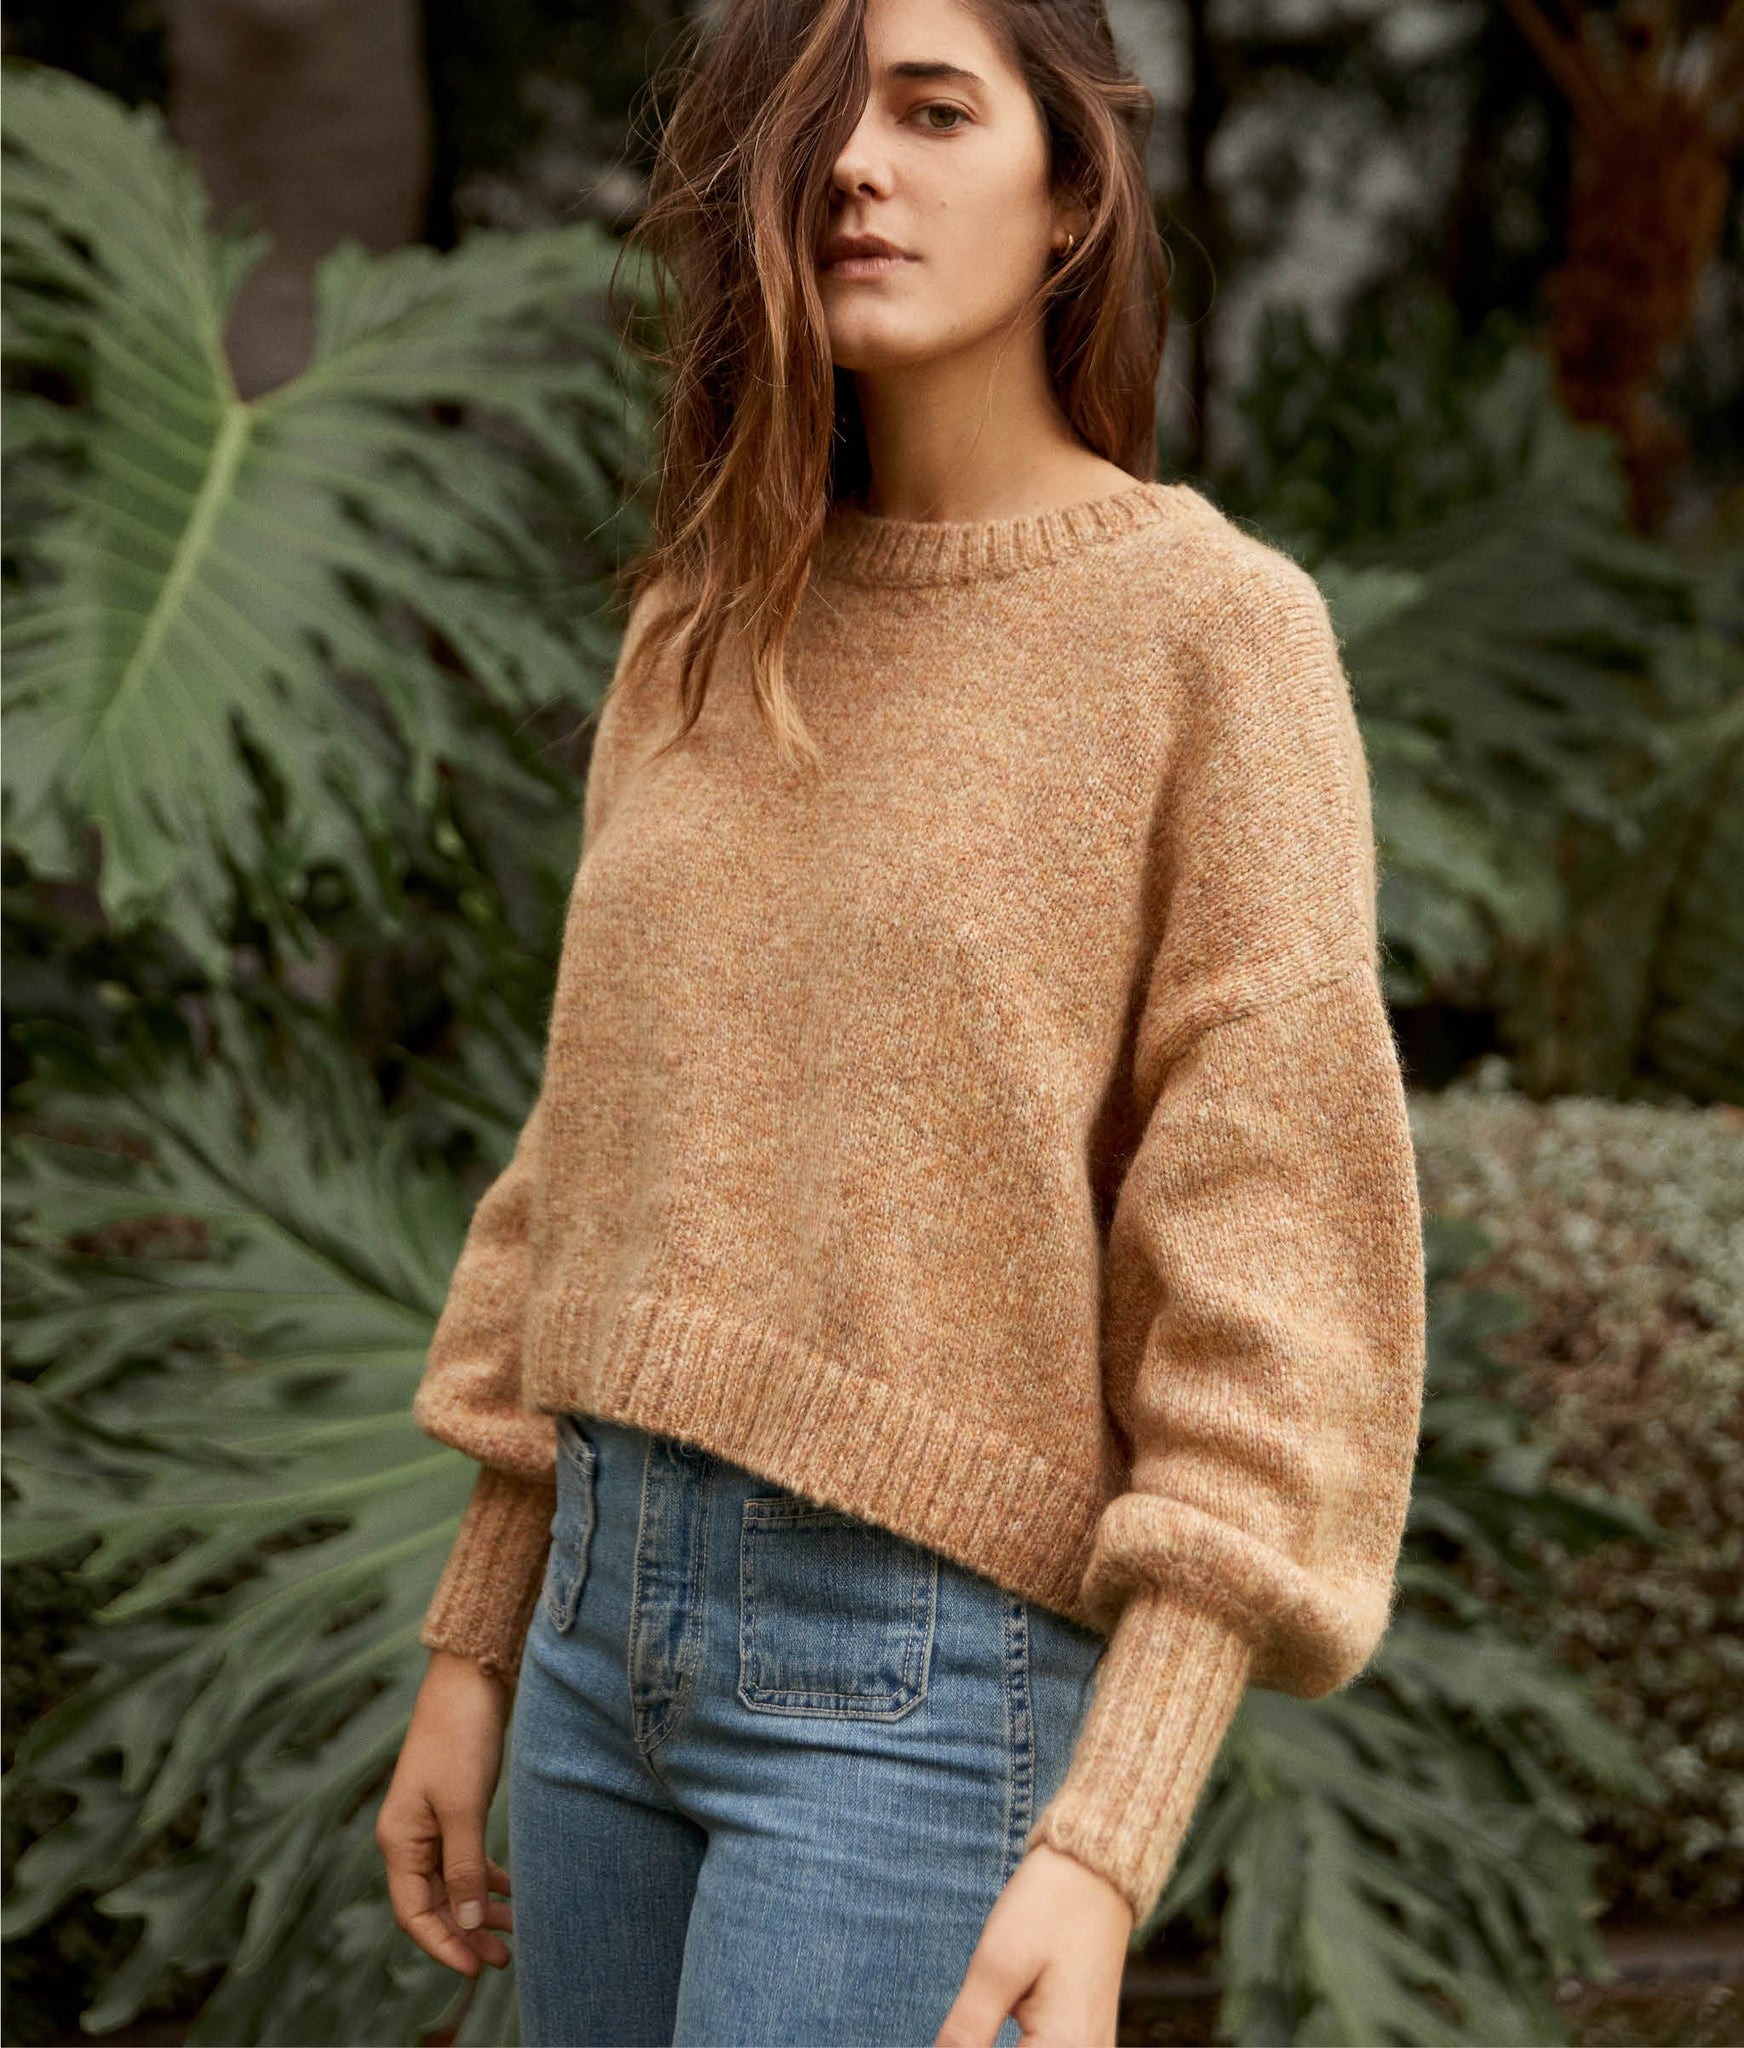 The Jane Sweater | Autumn Knit